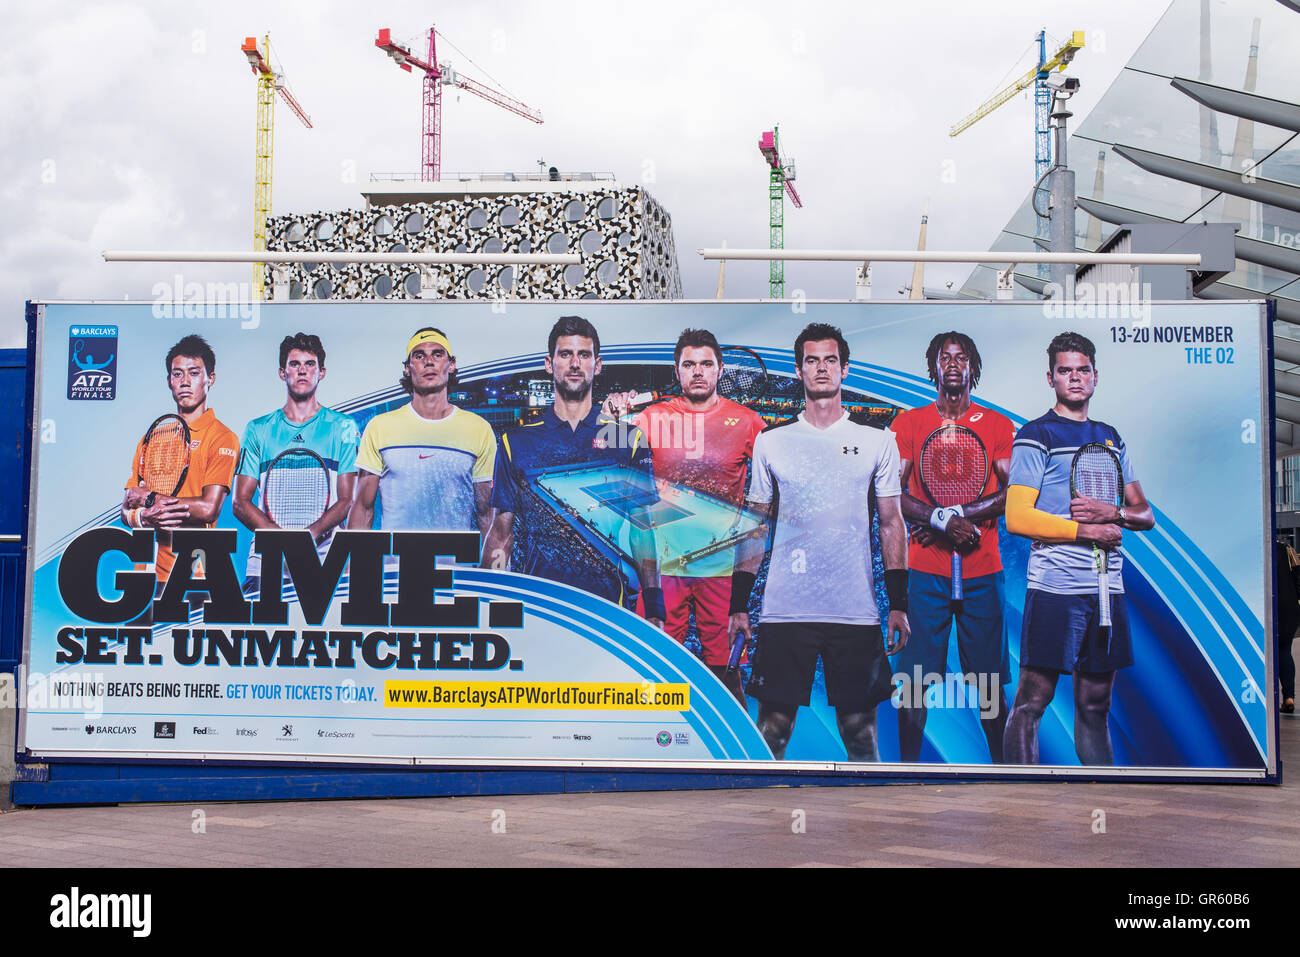 Giant billboard promoting the Barclays ATP World Tour Finals 2016 which will be held in London 13-20 November 2016. - Stock Image